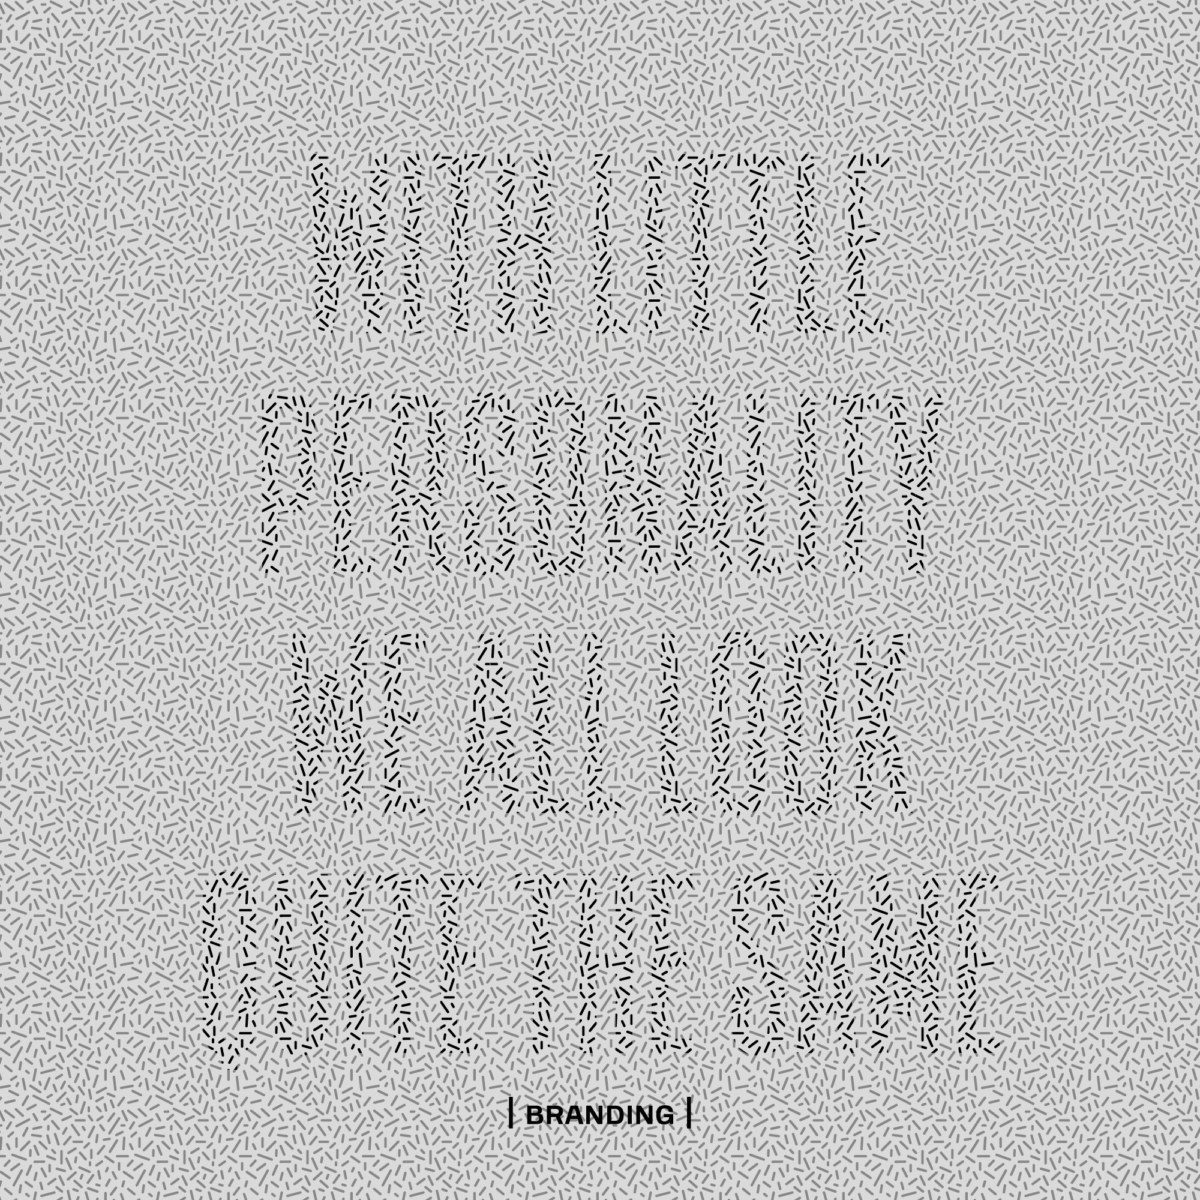 With Little Personality We All Look Quite The Same